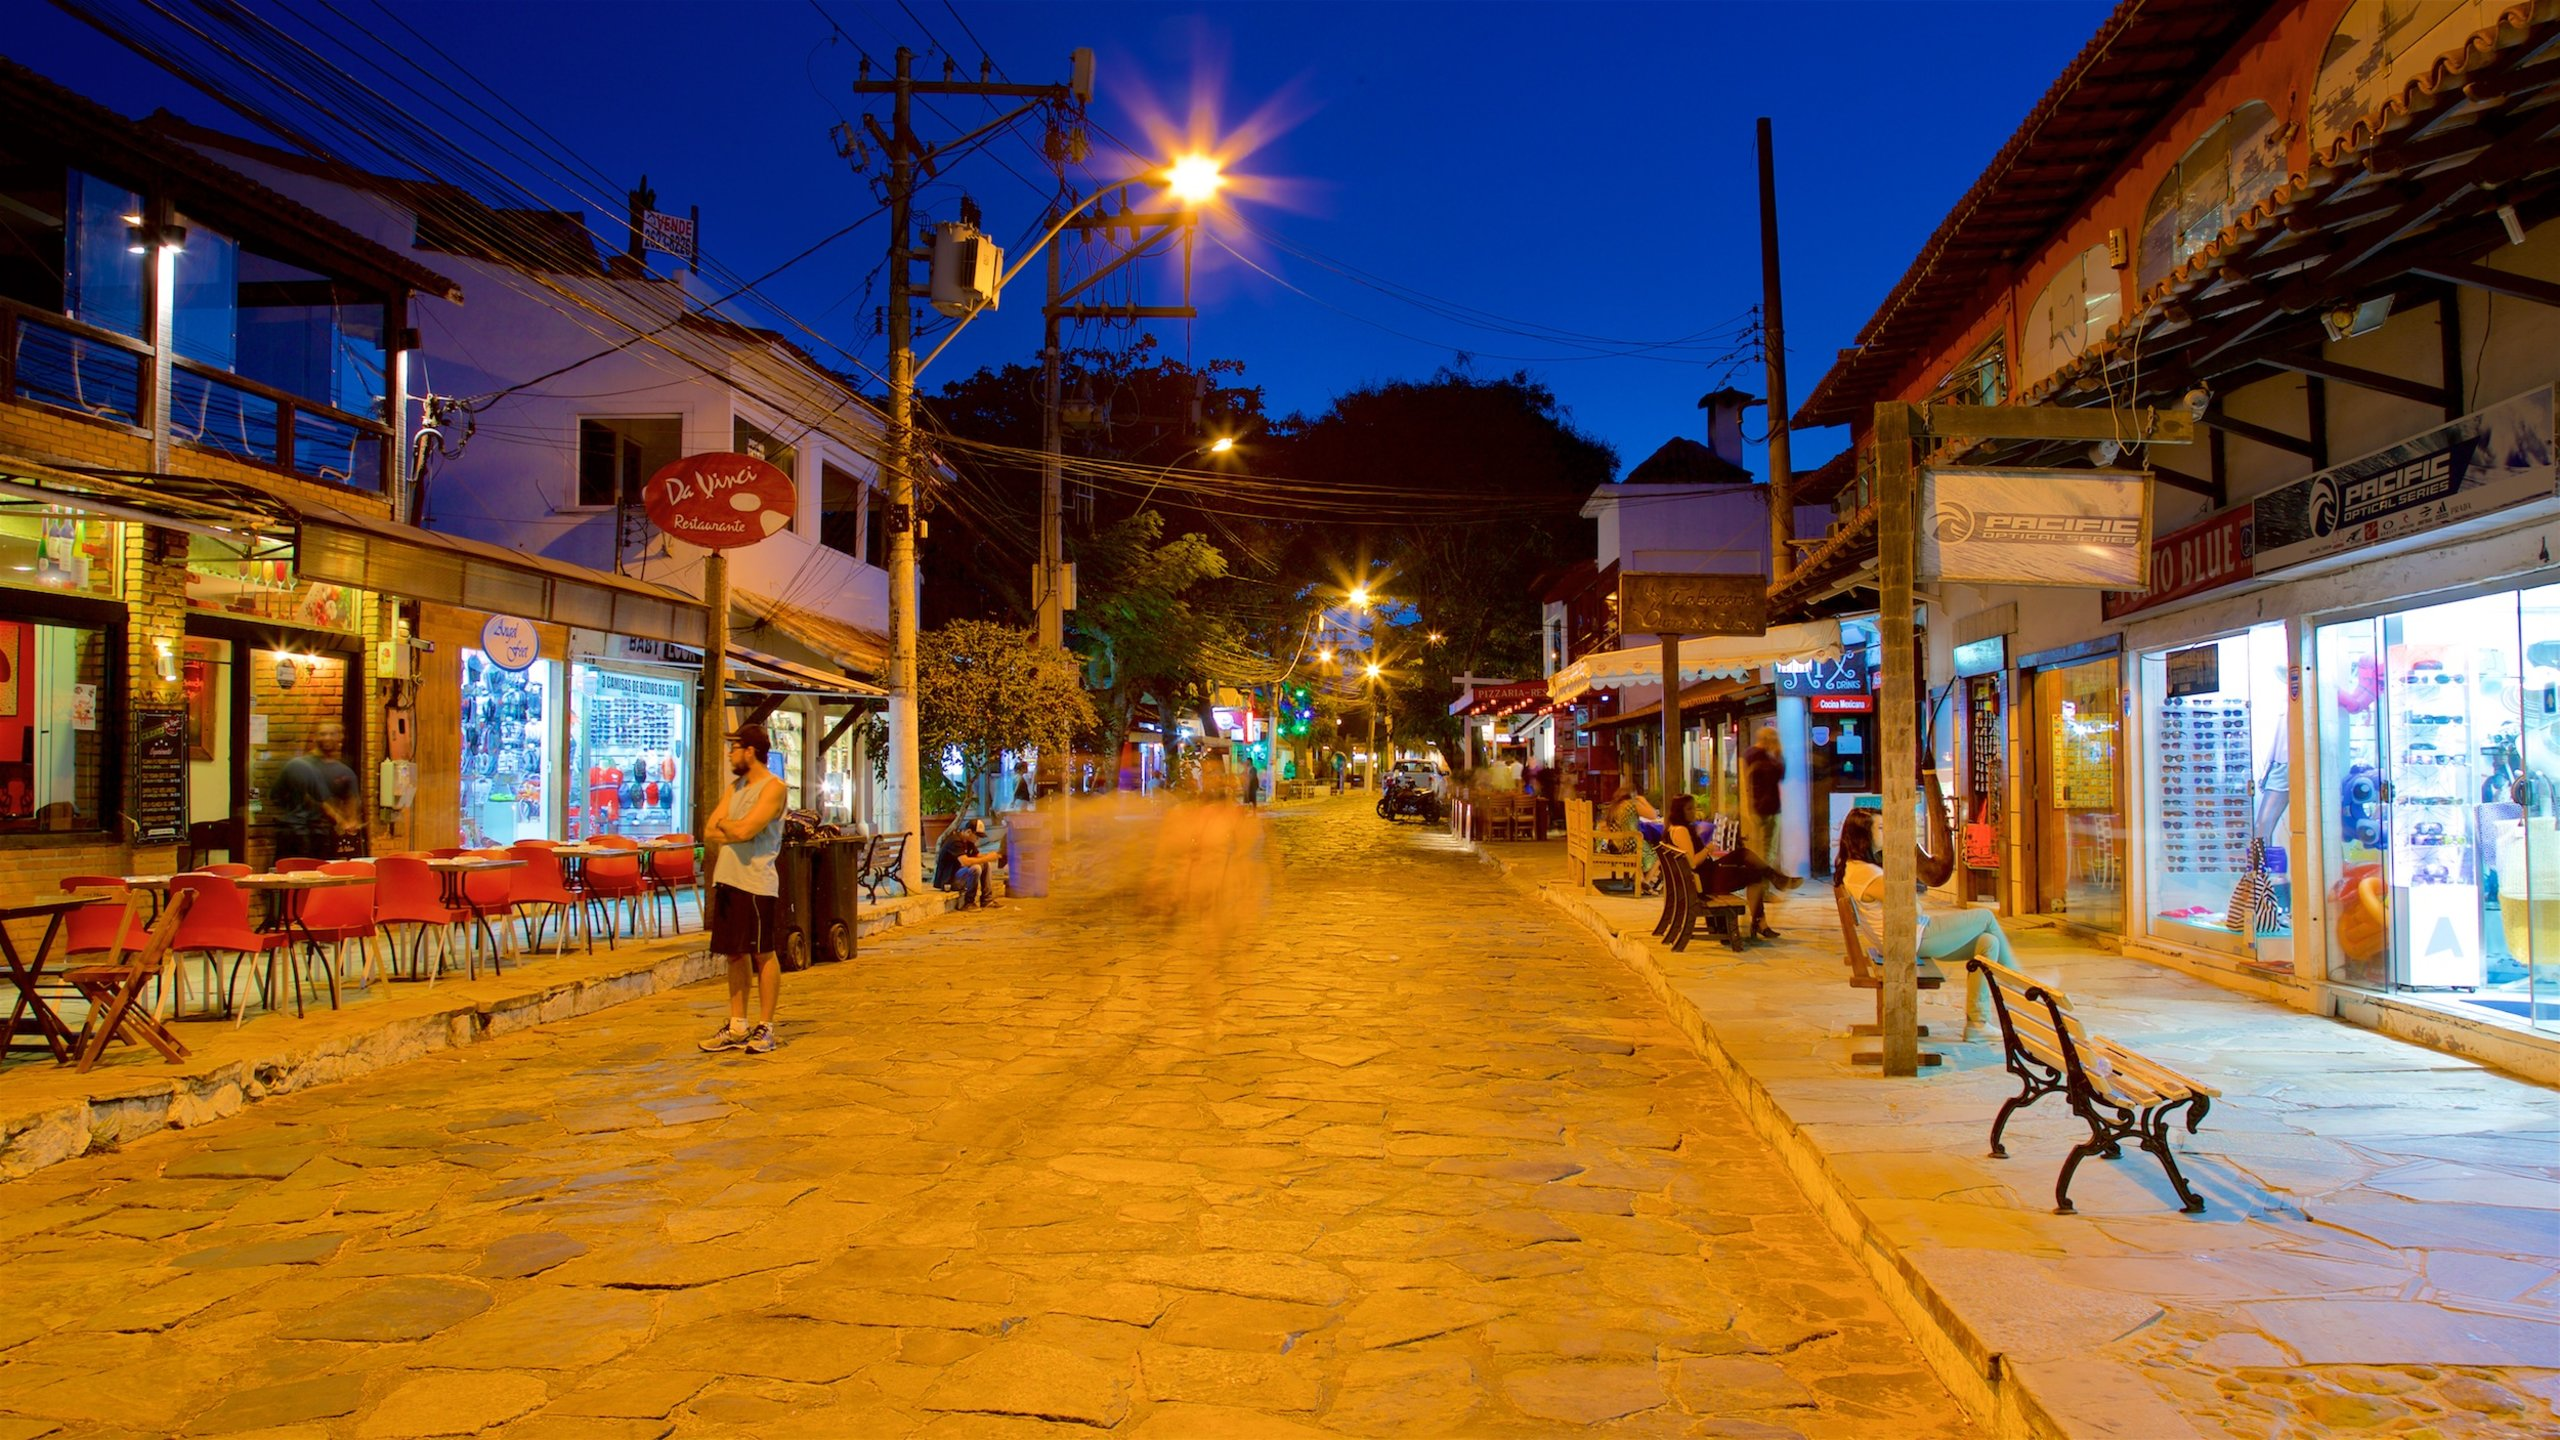 Spend a relaxed afternoon exploring the charming stores, galleries and cafés of this busy and colorful street, or head to one of the bars here that come alive after dark.